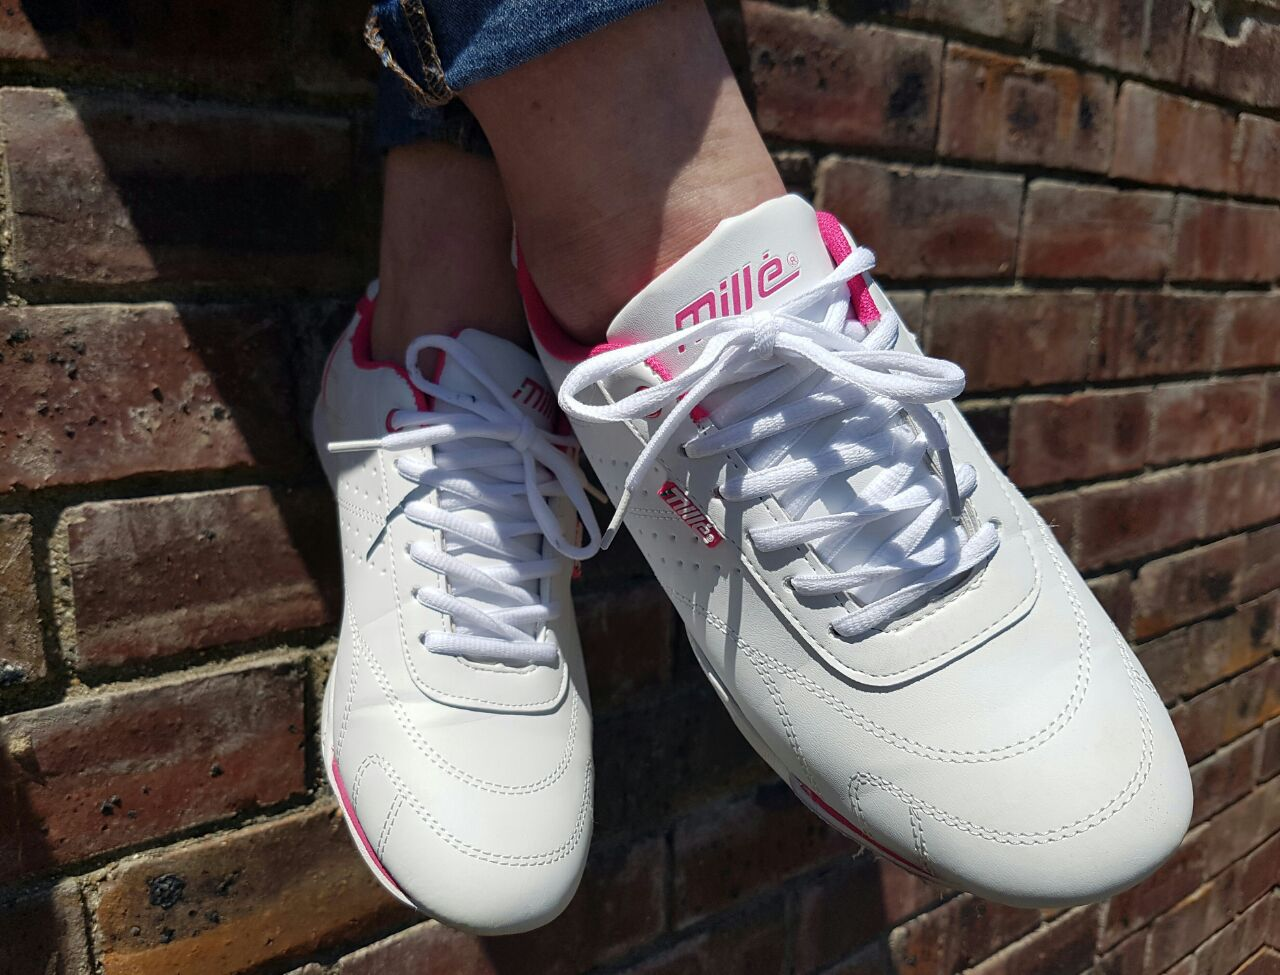 Millé F1 ladies sneakers